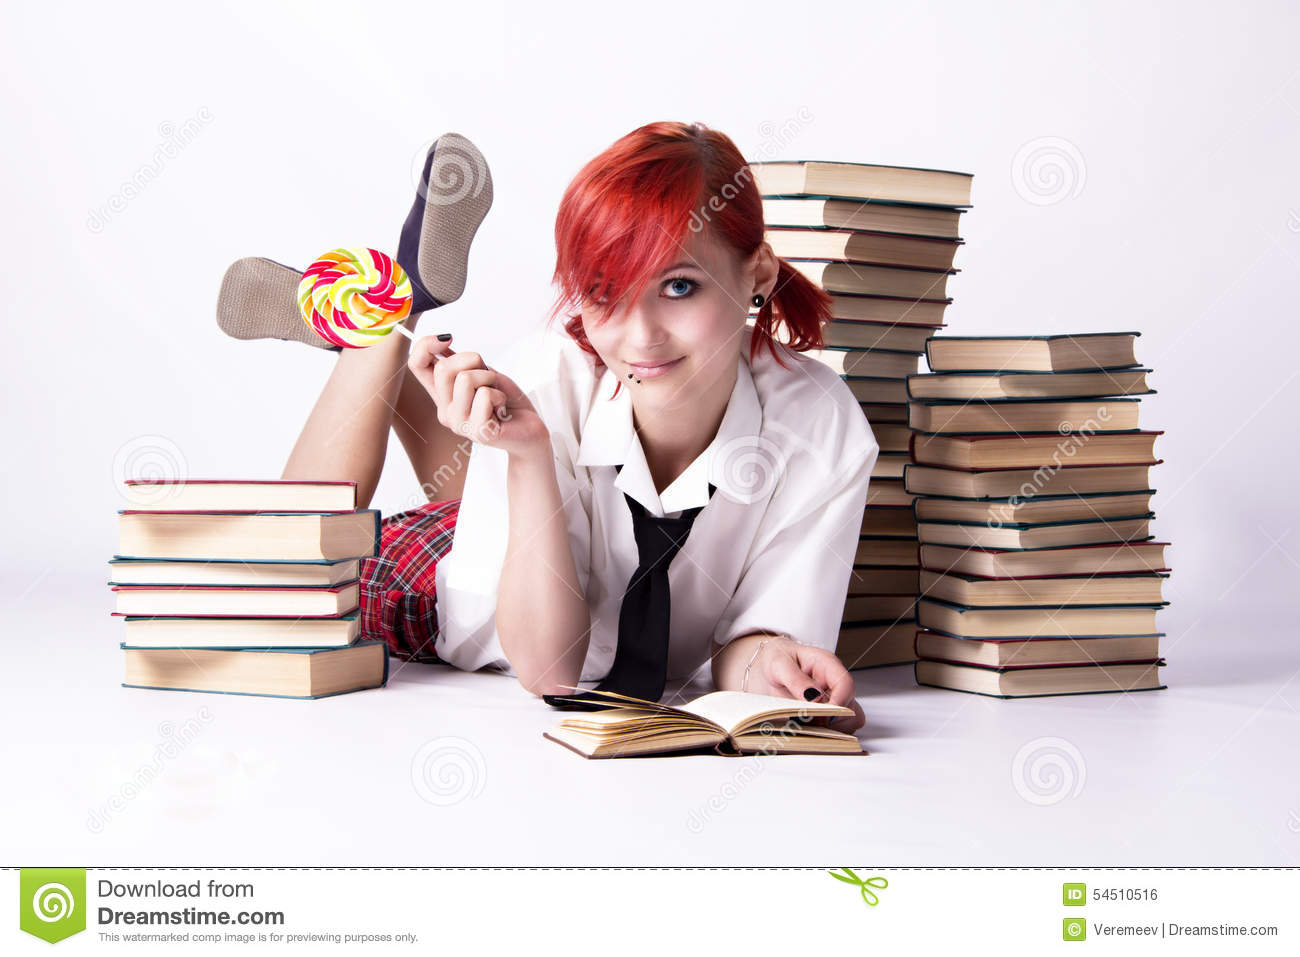 The girl in anime style with candy and books